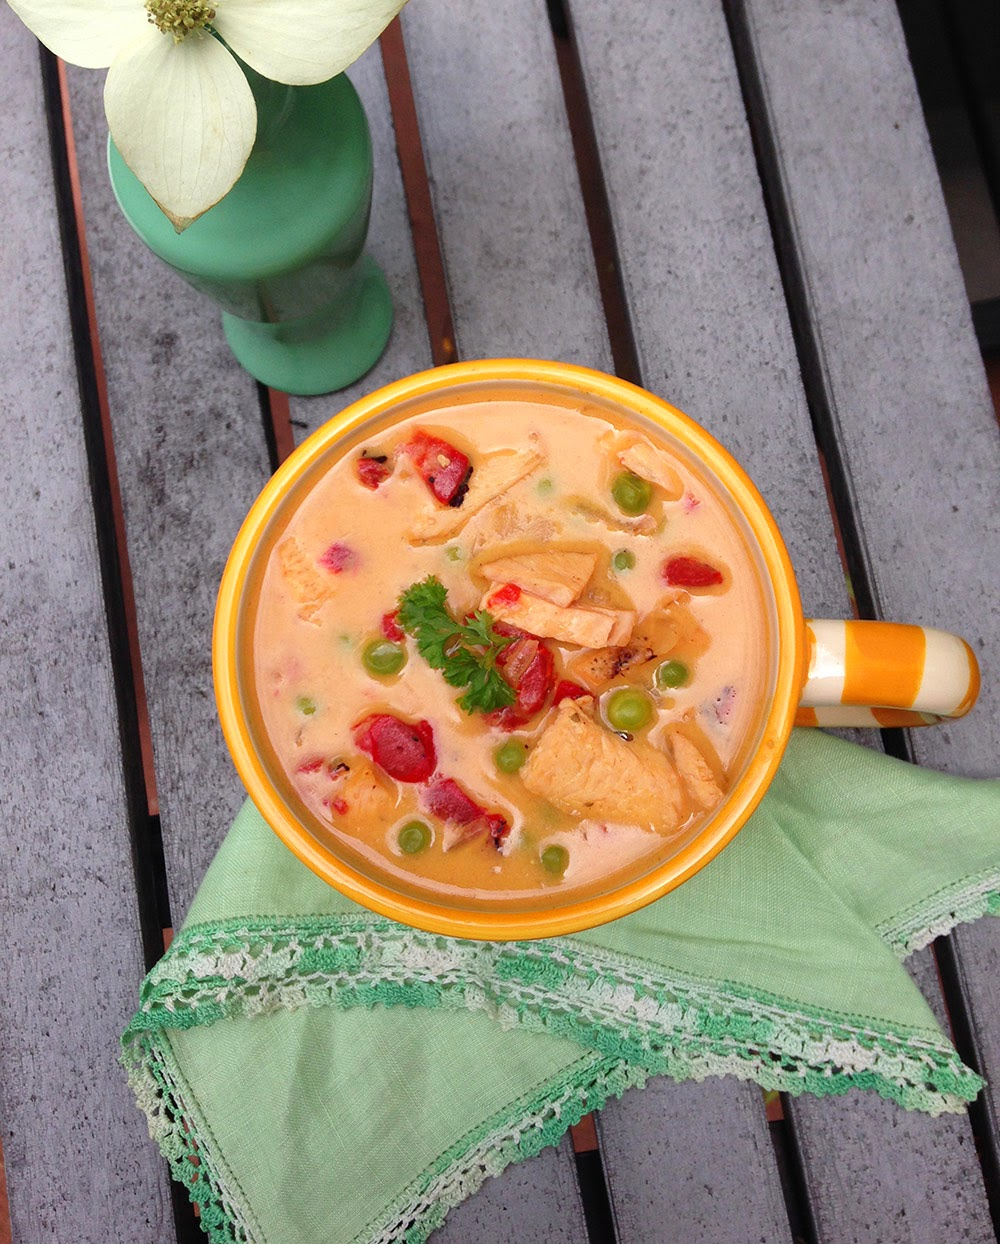 Crockpot Thai Coconut Chicken Soup - Peanut-free Recipe